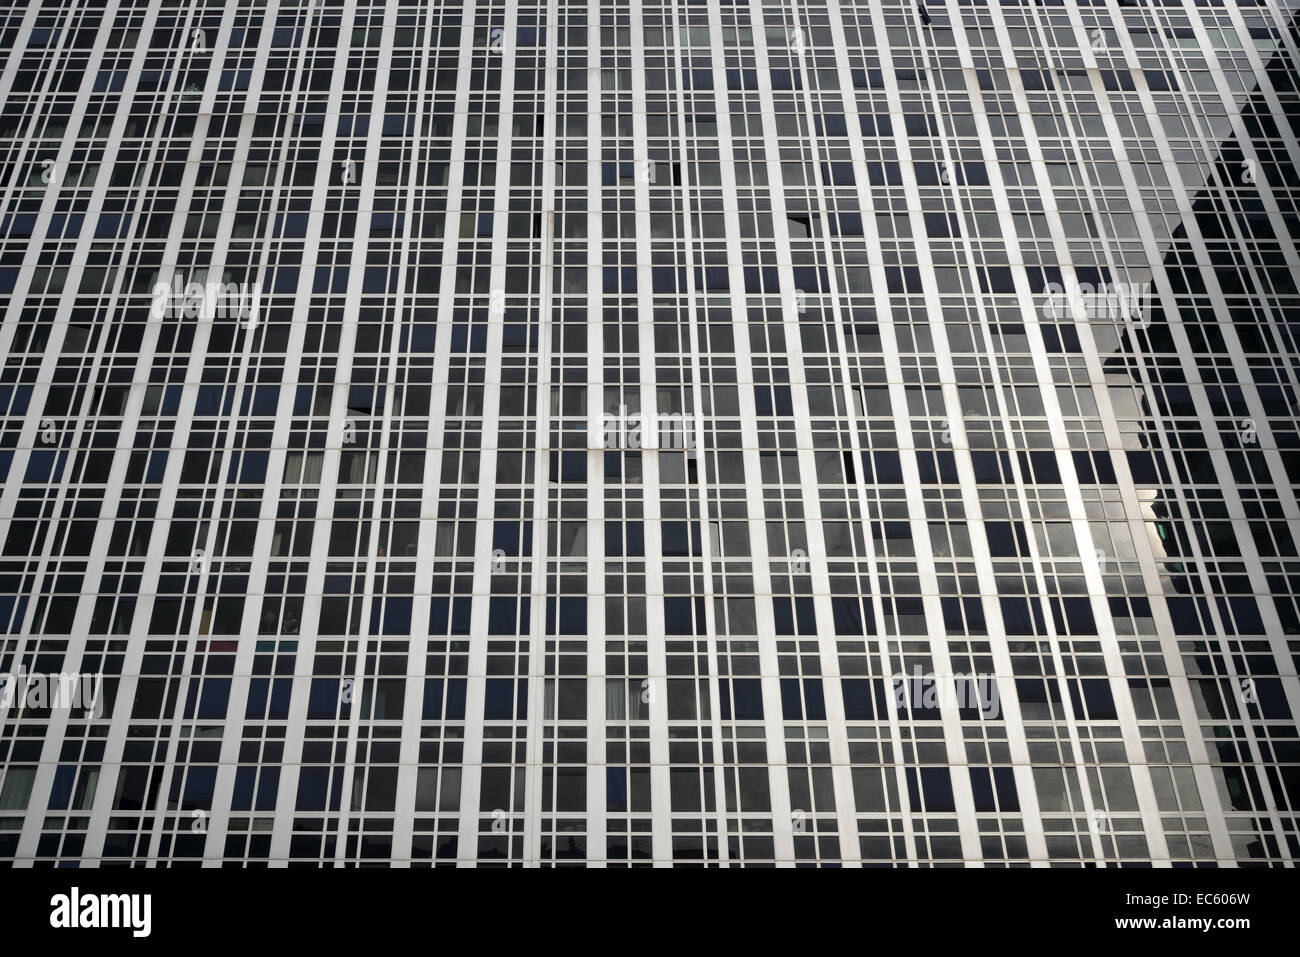 Grid of metal window frames on a 60s/70s glass curtain wall office ...